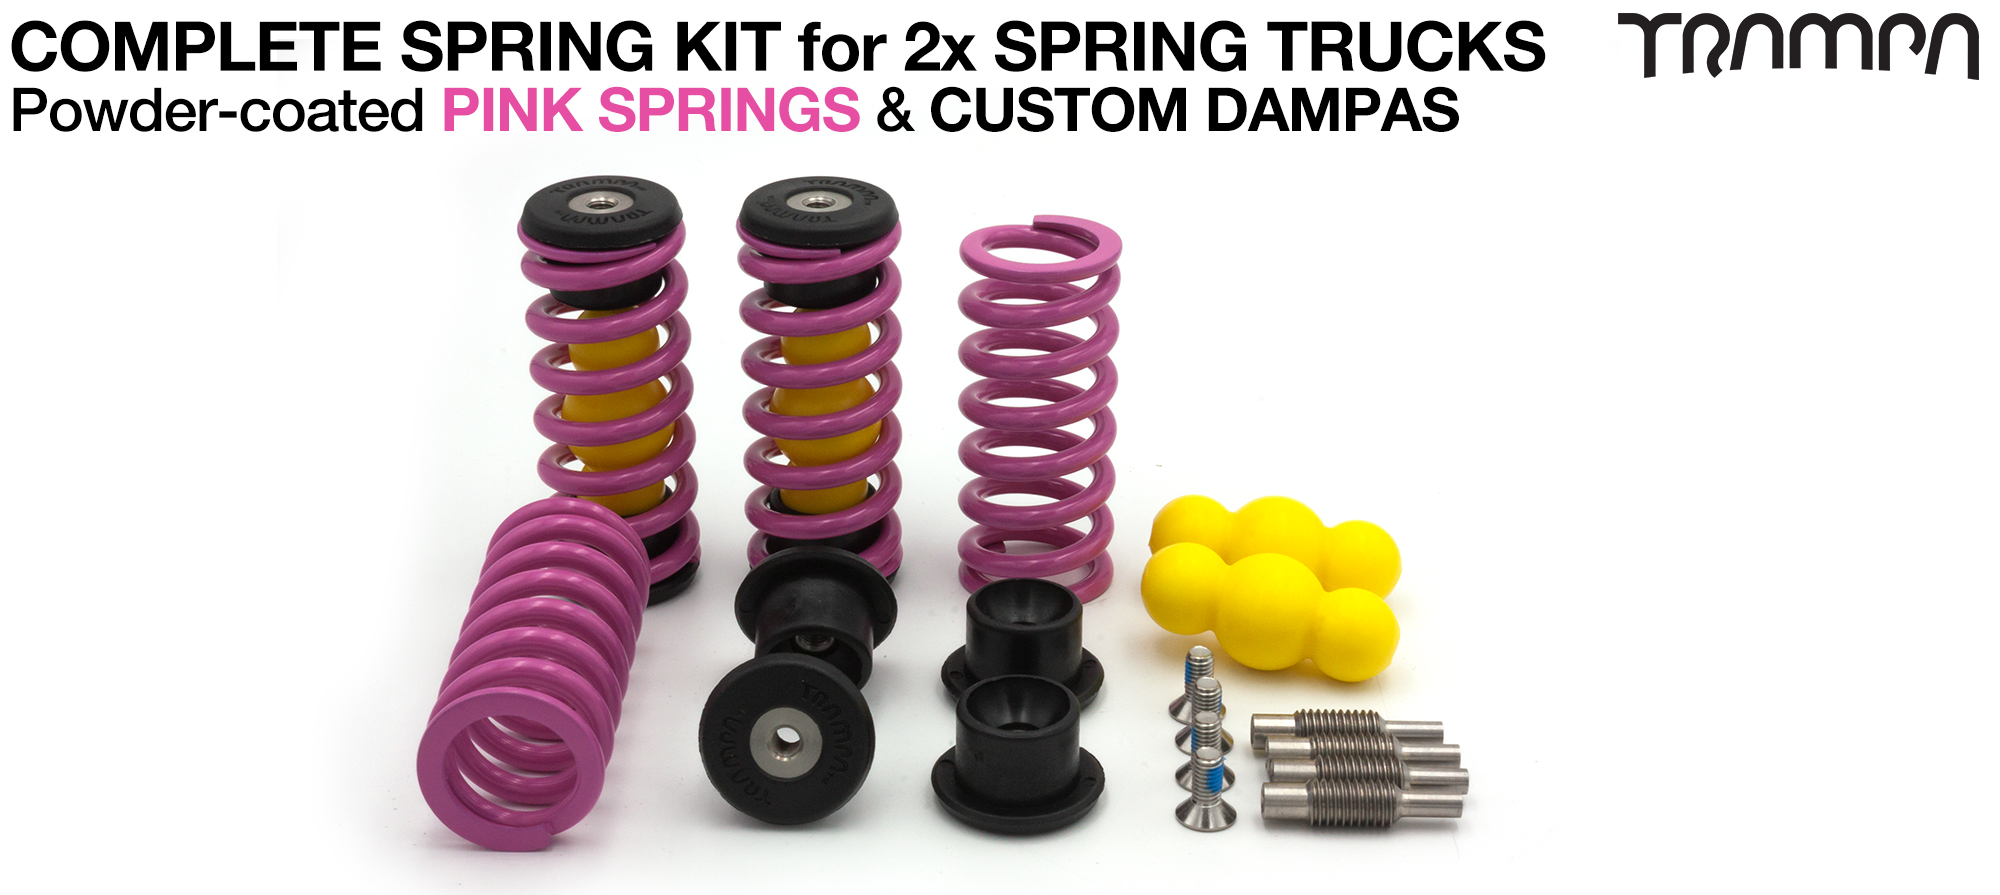 Powder Coated Springs - PINK